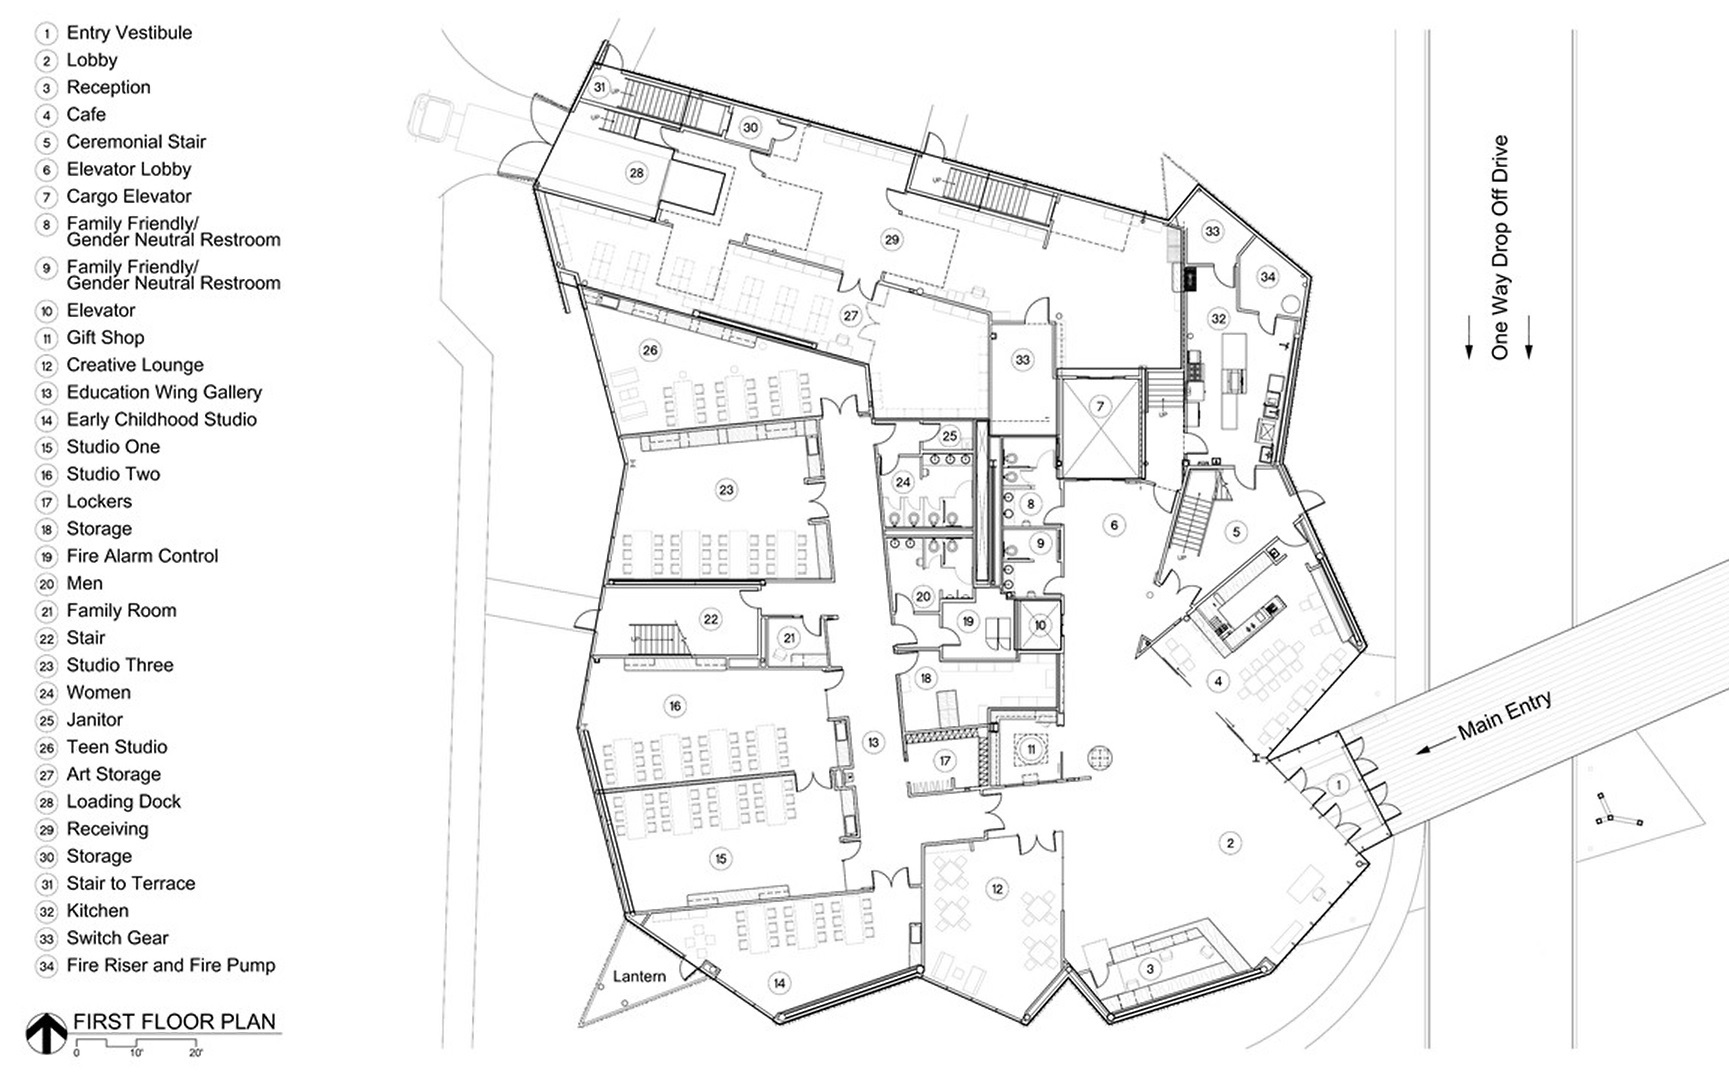 An image of a building floor plan